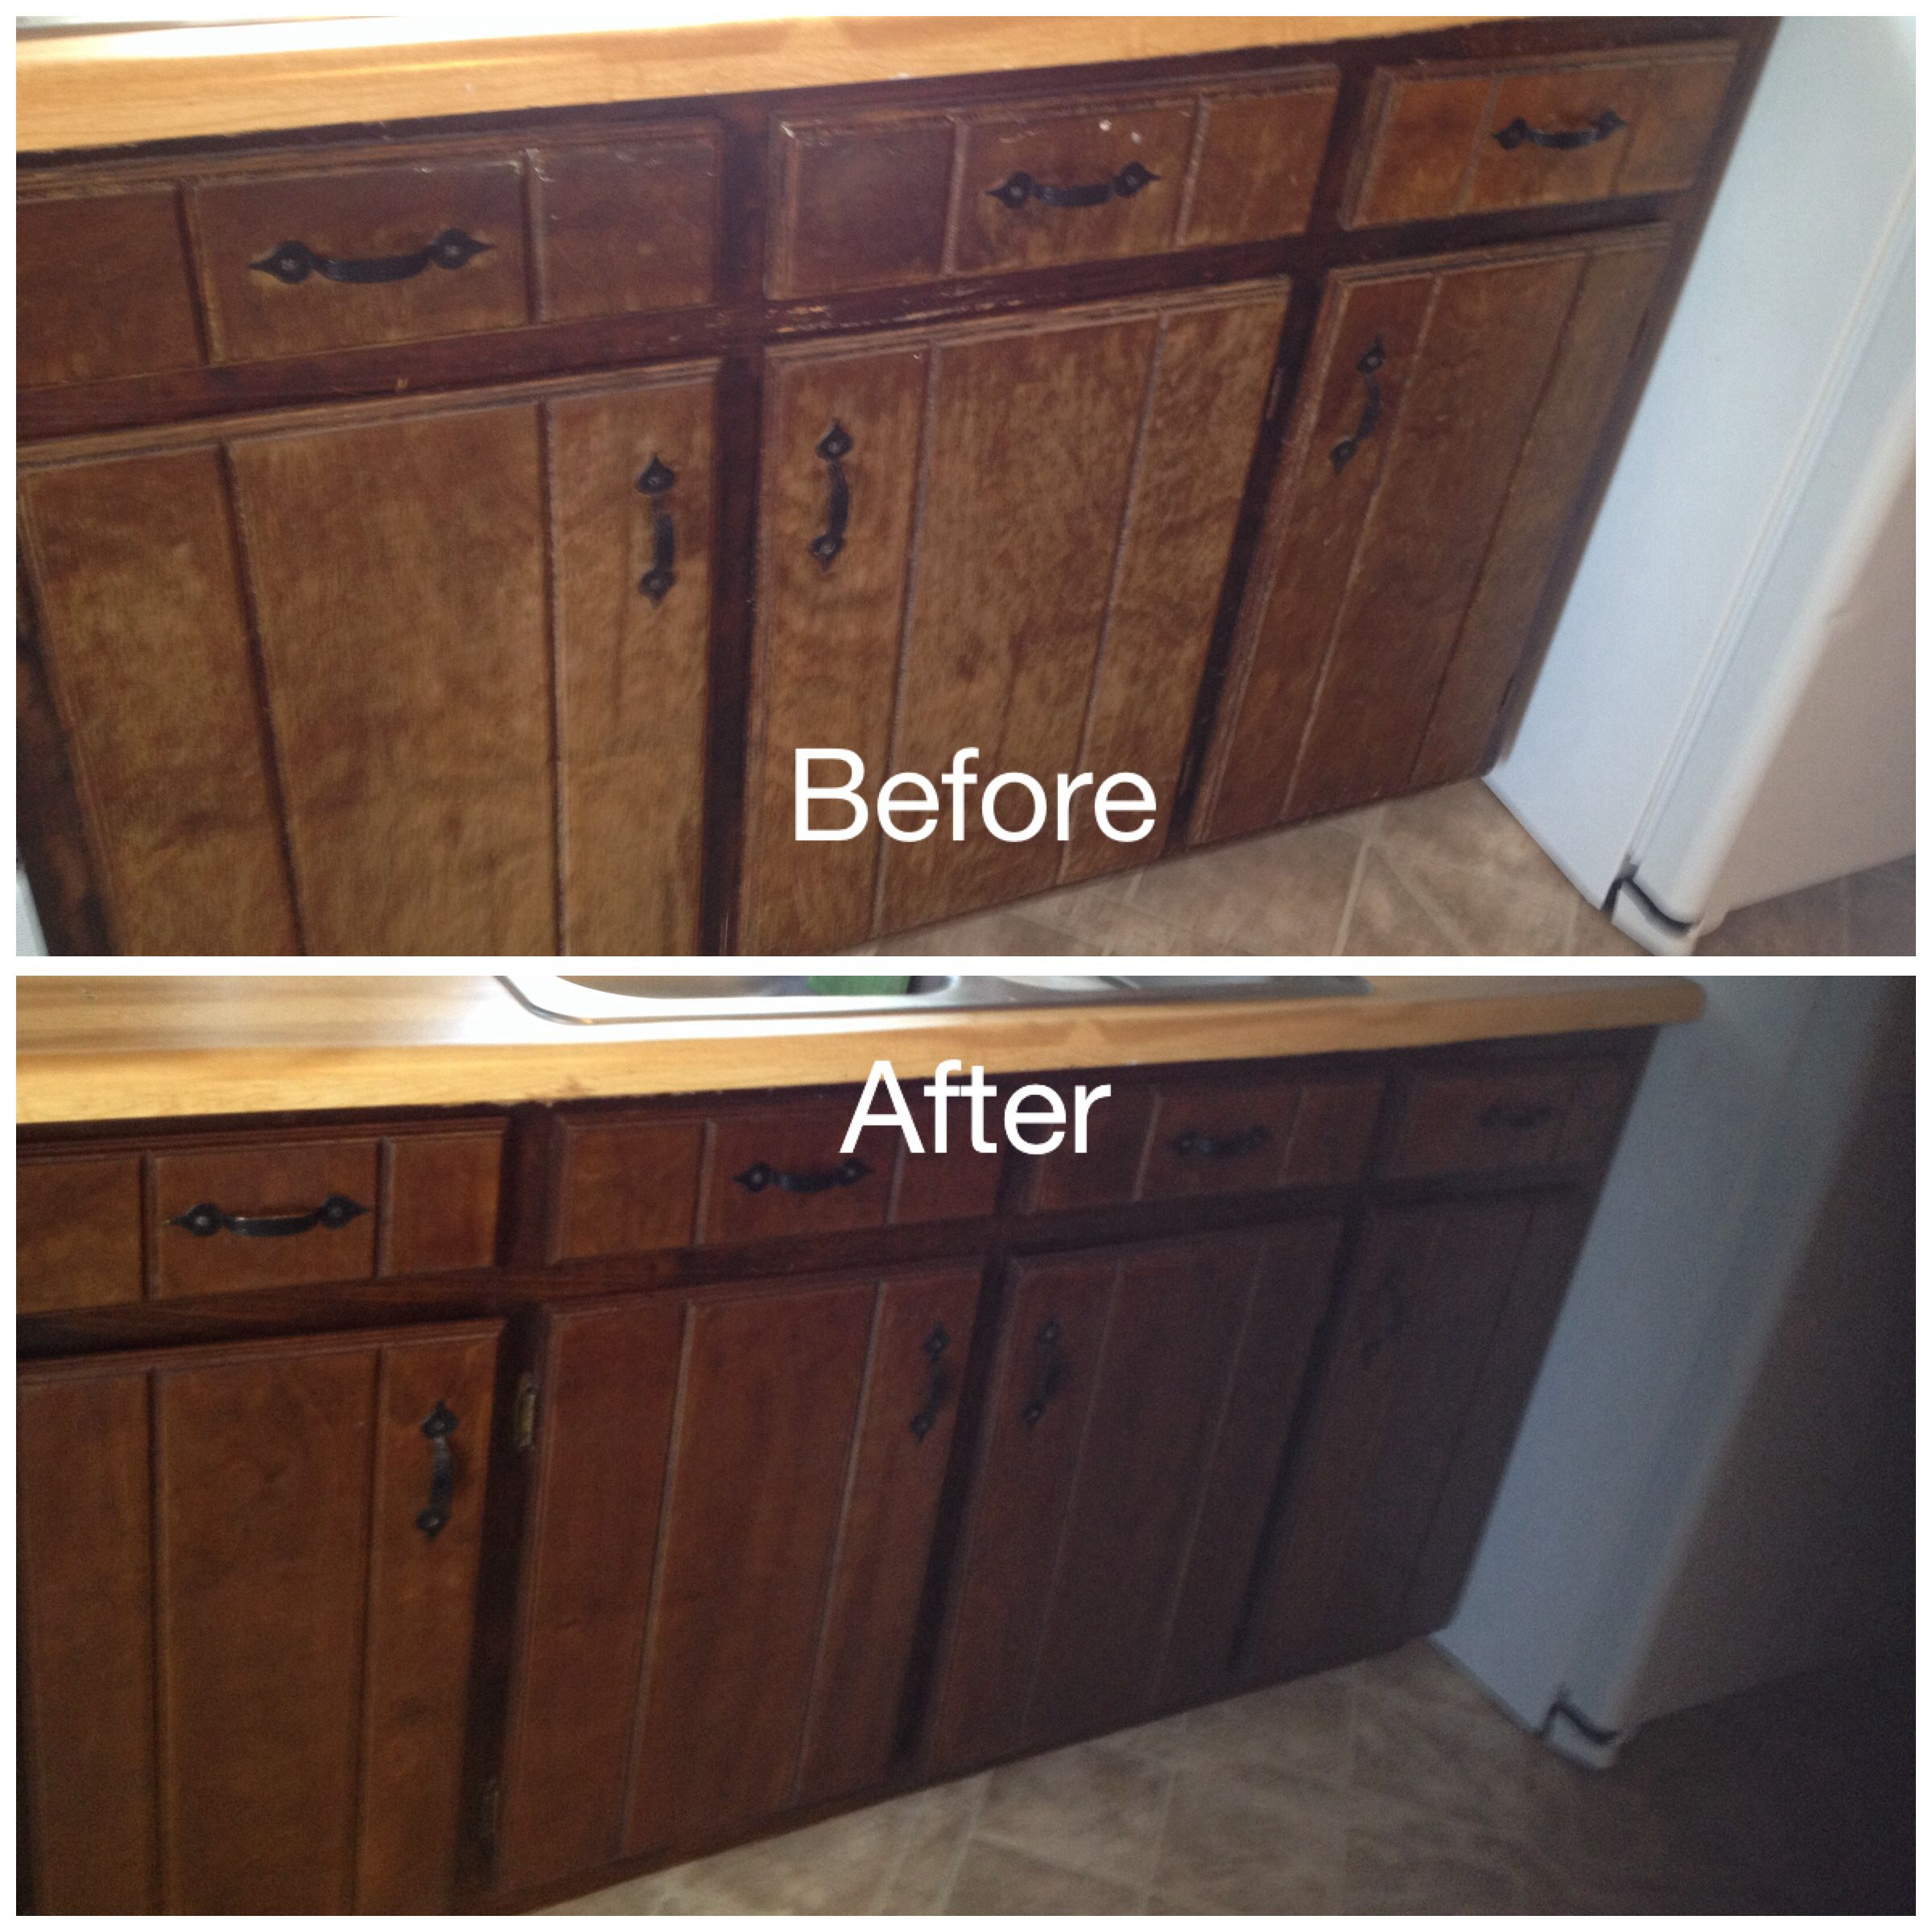 sanding and restaining kitchen cabinets beach house backsplash ideas my worn stained with minwax gel stain in hickory removed doors hinges lightly sanded brushed on wiped off rag